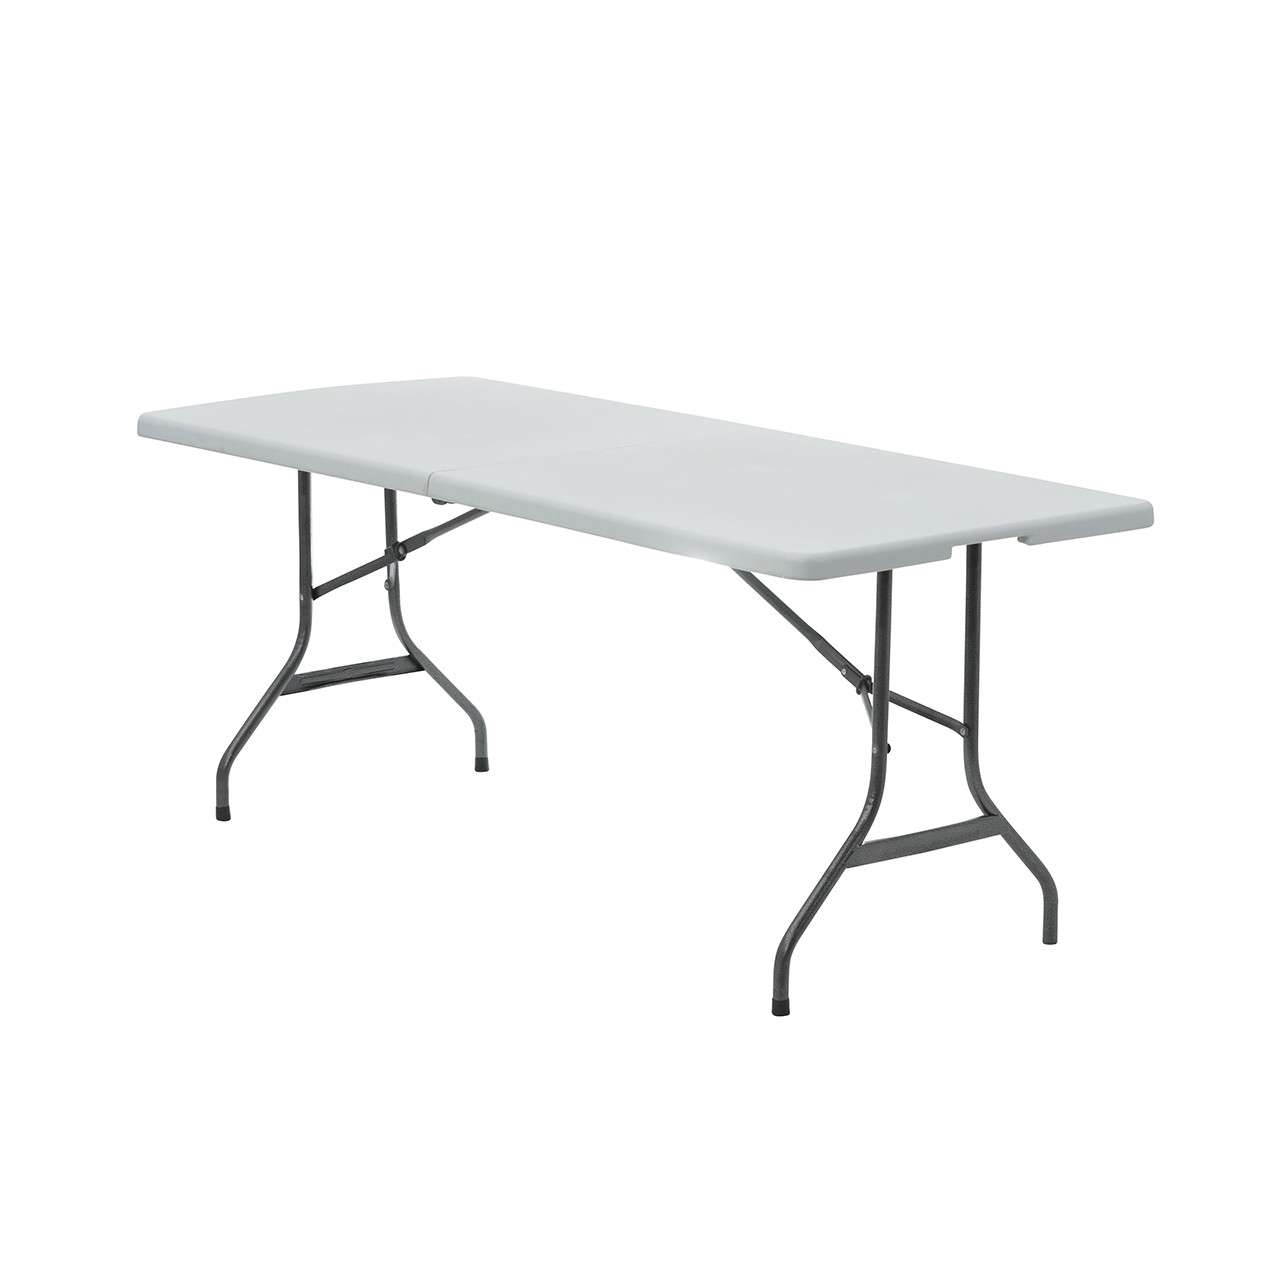 6 Ft Fitted Rectangular Polyester Tablecloths Gray  C2 B7 6 Ft Rectangular Table